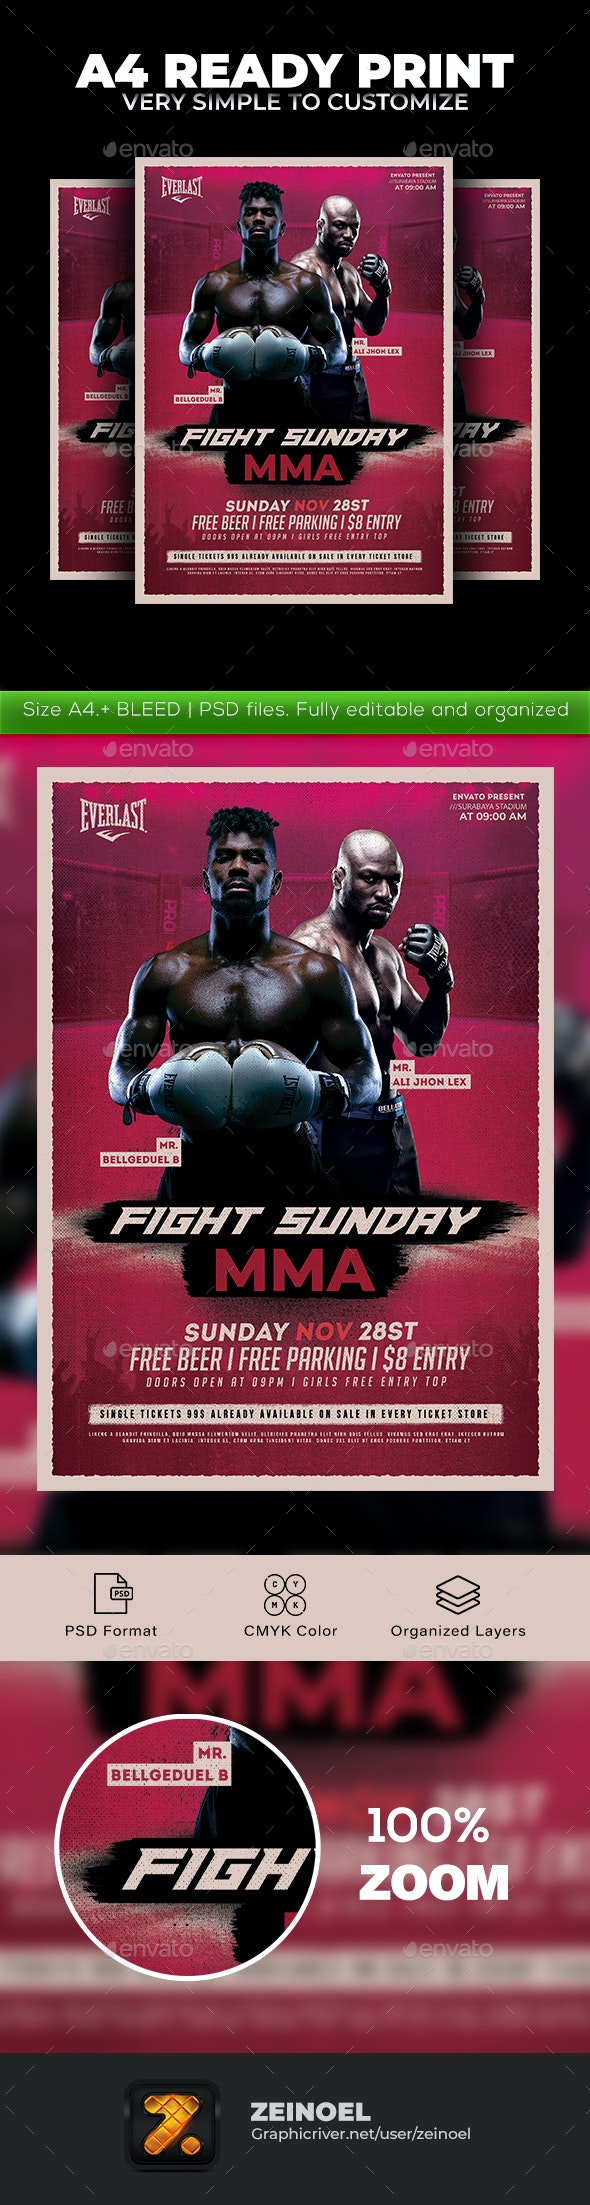 Fight Sunday MMA Flyer - Sports Events